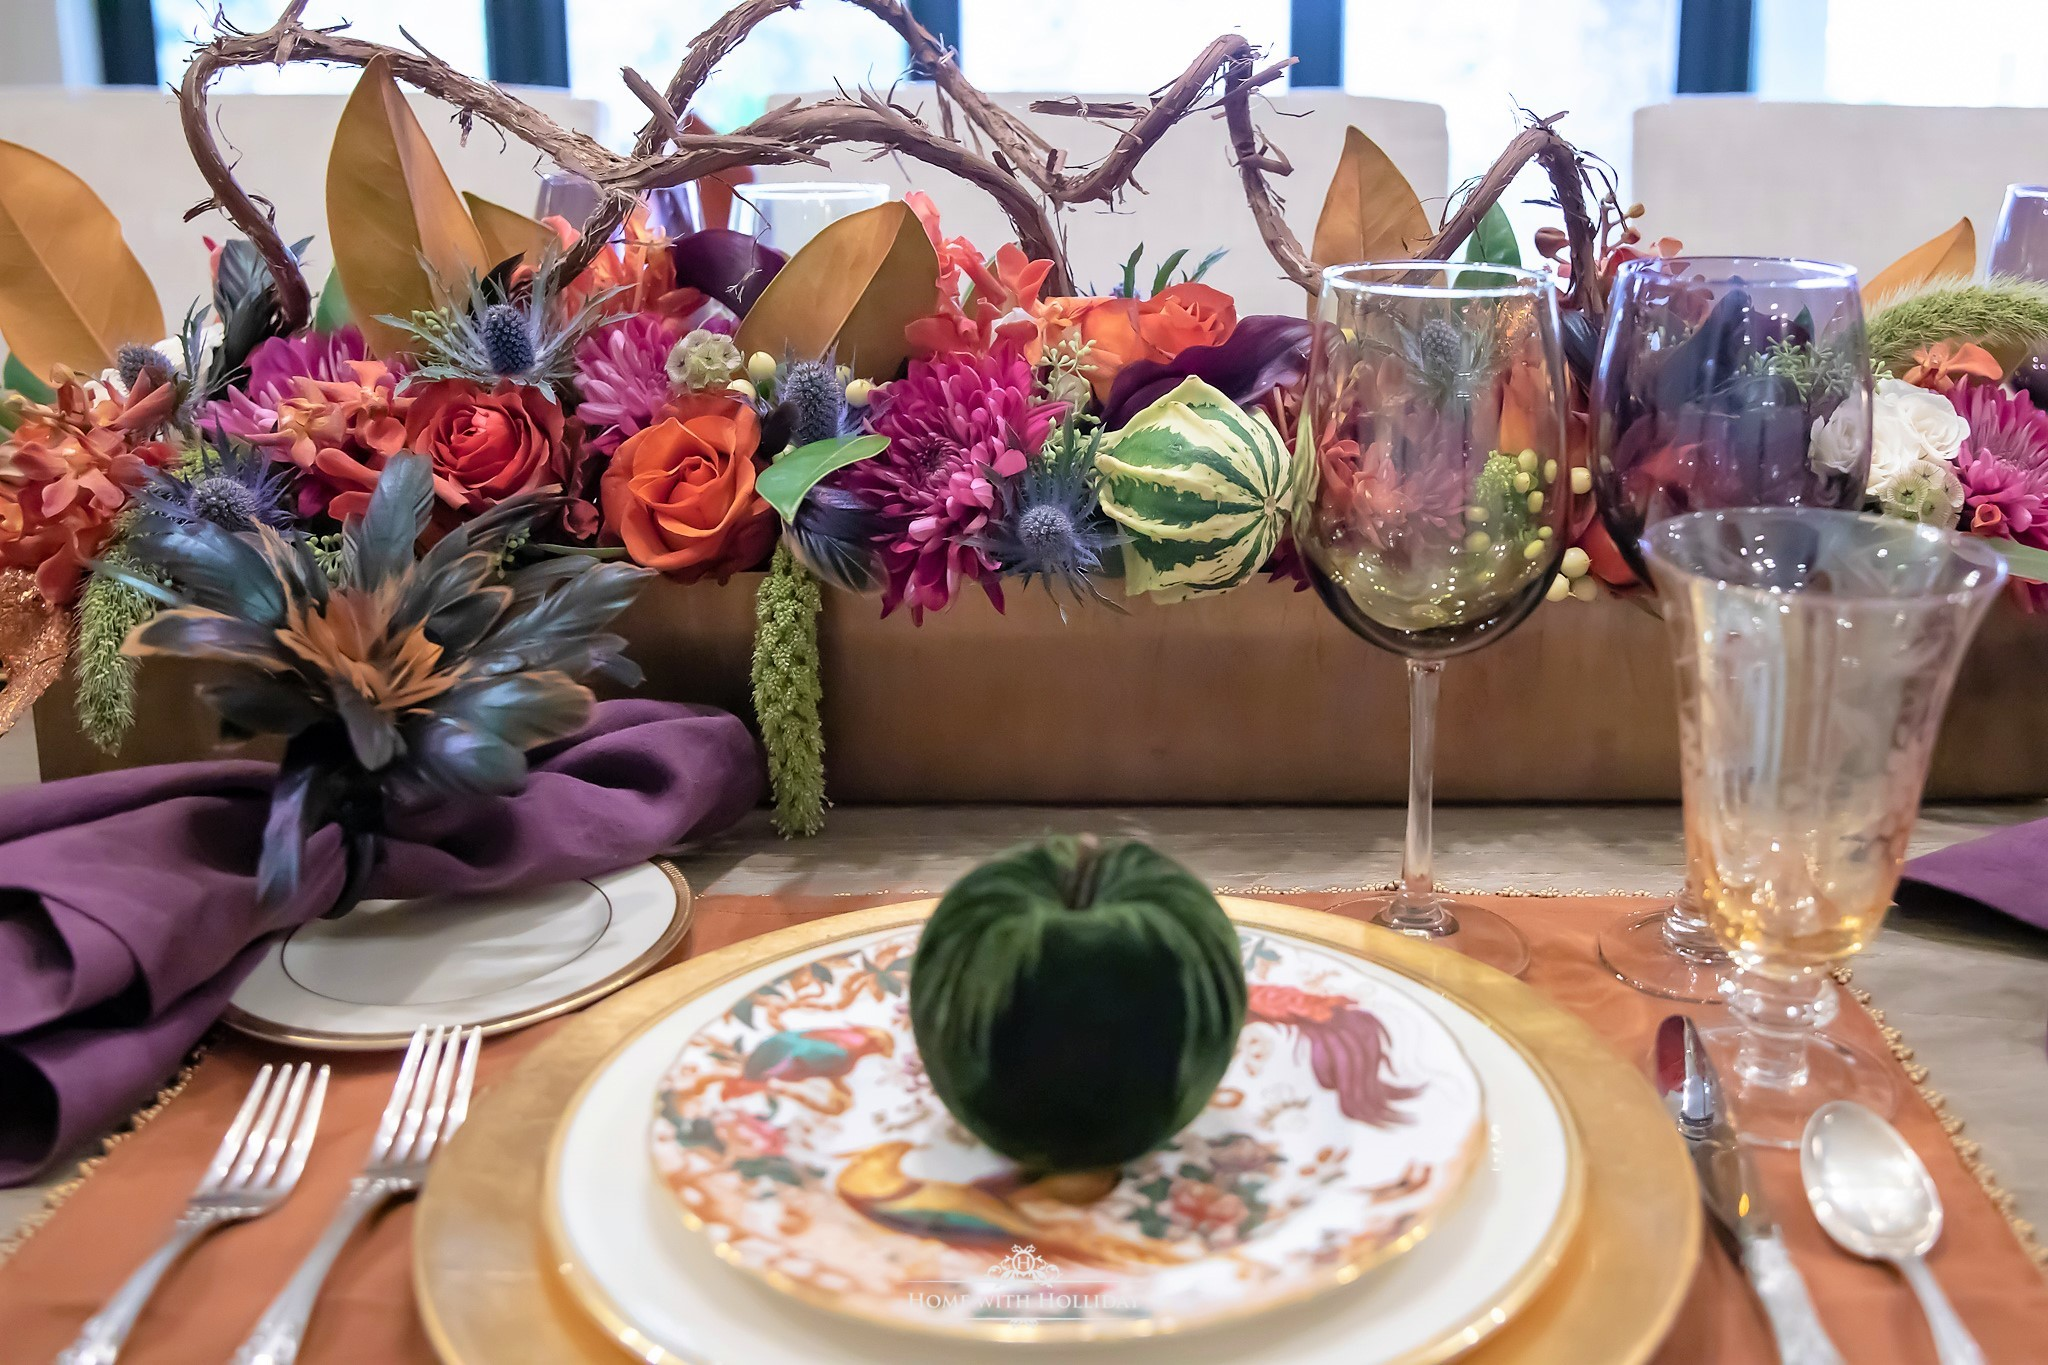 Placesettings for a Jewel-toned Thanksgiving Table Setting - Home with Holliday